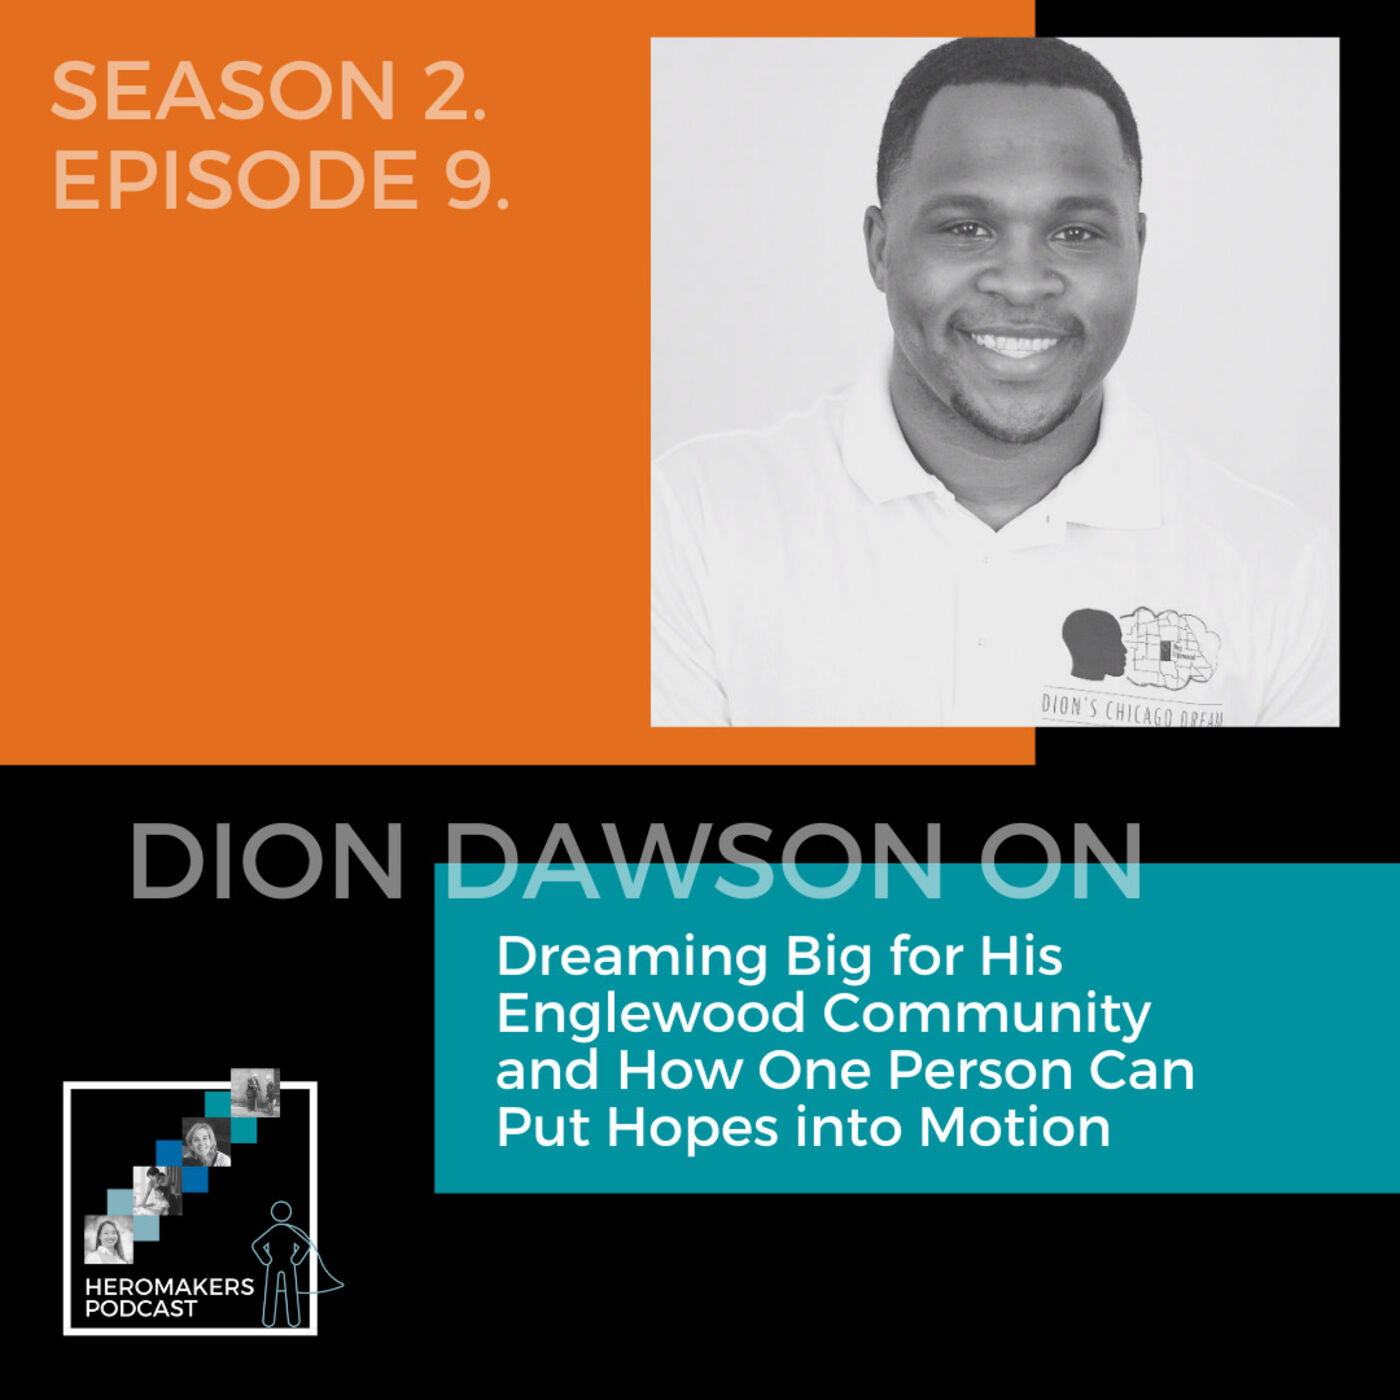 Dion Dawson on Dreaming Big for His Englewood Community and How One Person Can Put Hopes into Motion